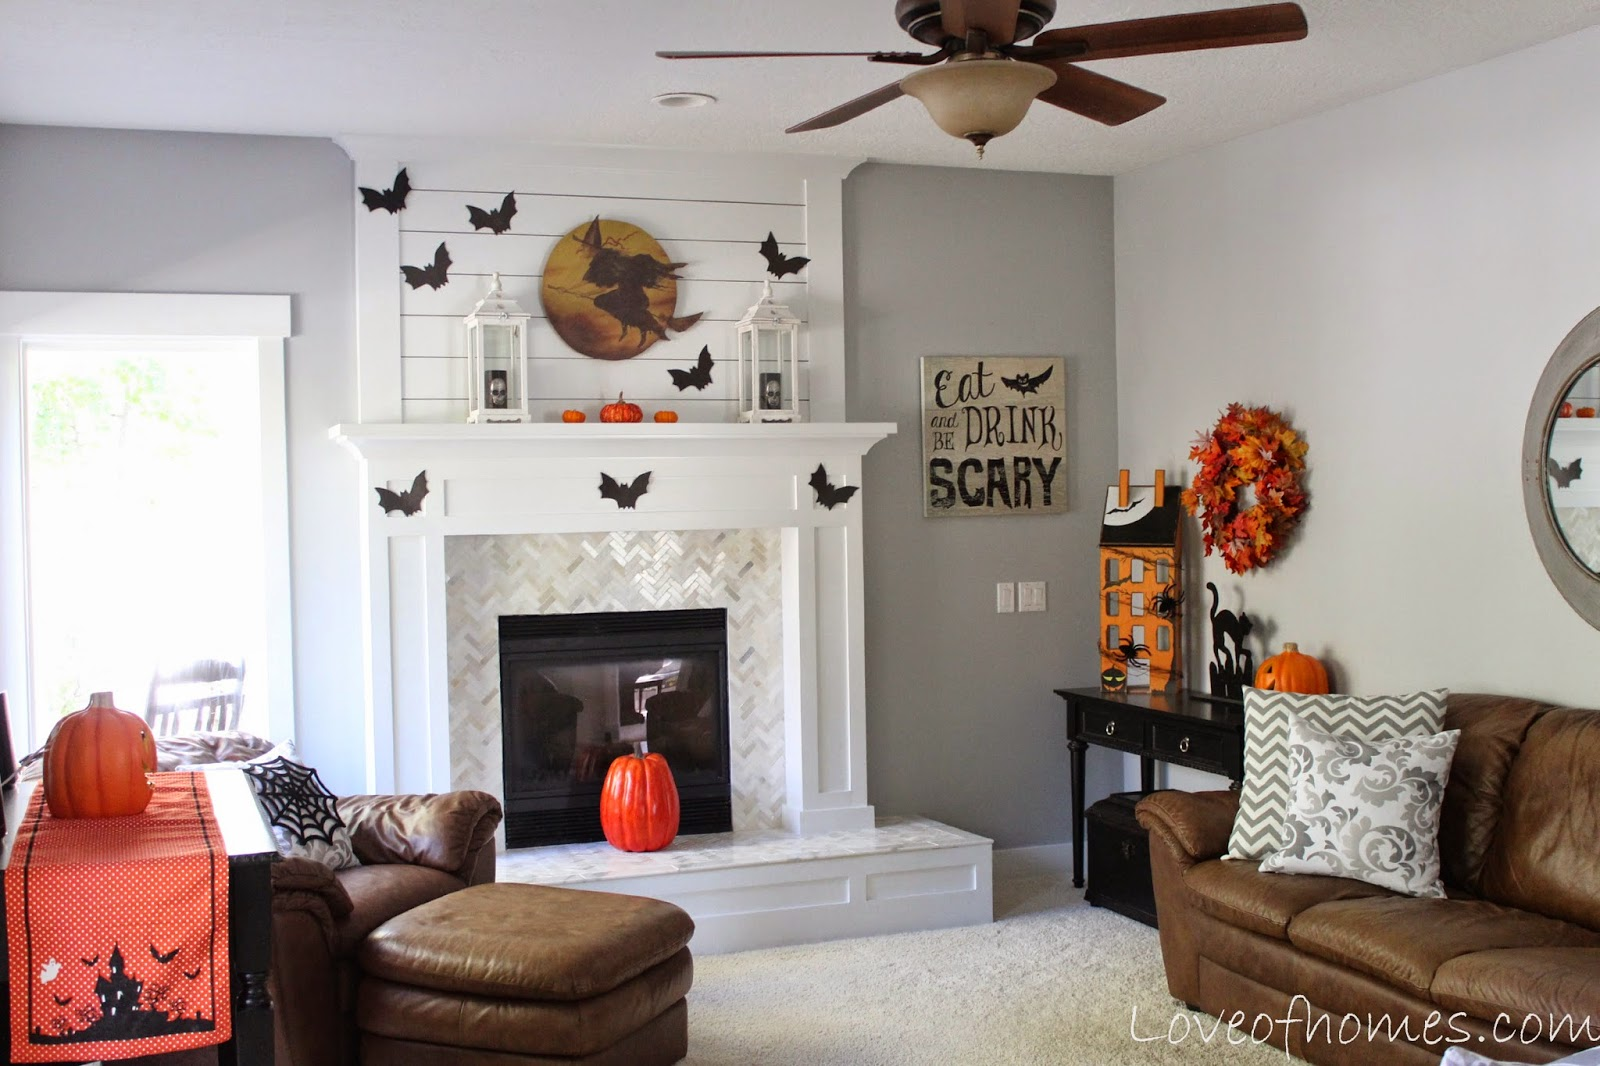 Love Of Homes Halloween Decor 2014 How To Wire A Ceiling Rose In Simple Steps Craftomaniac Monday October 6